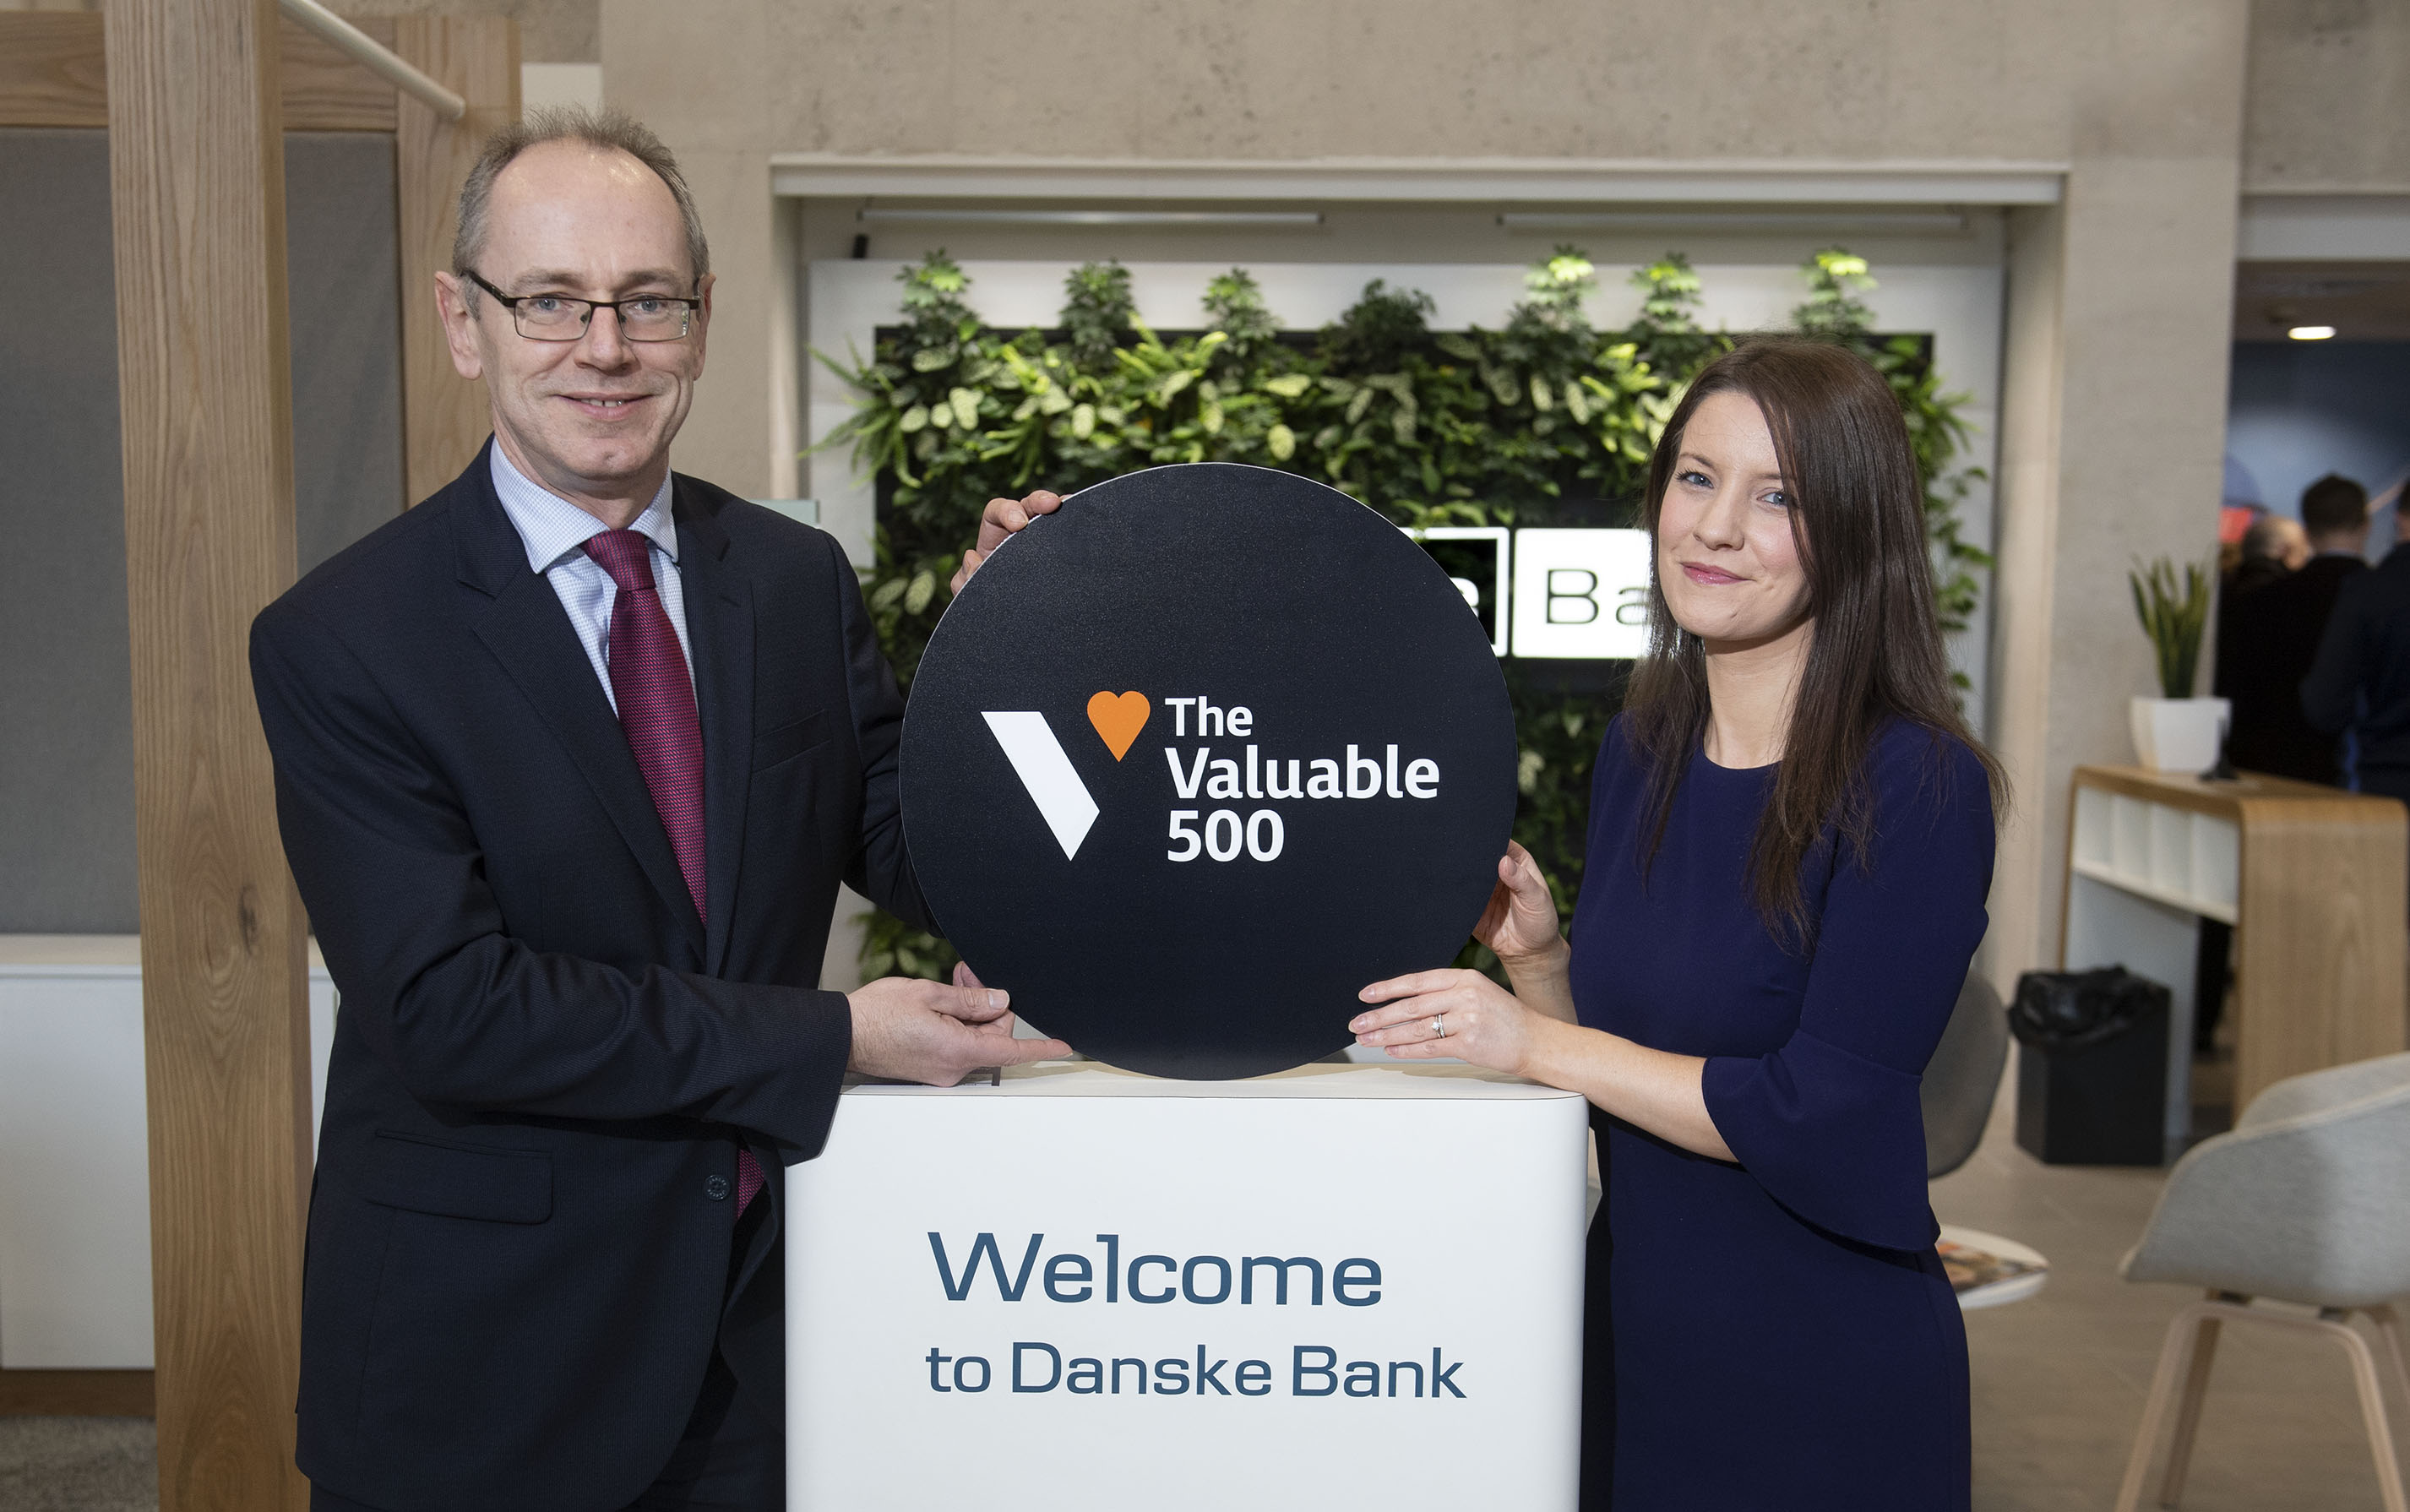 A man and woman stand inside. They're holding a circle board that says 'The Vaulable 500' above a stand that says 'Welcome to Danske Bank'.